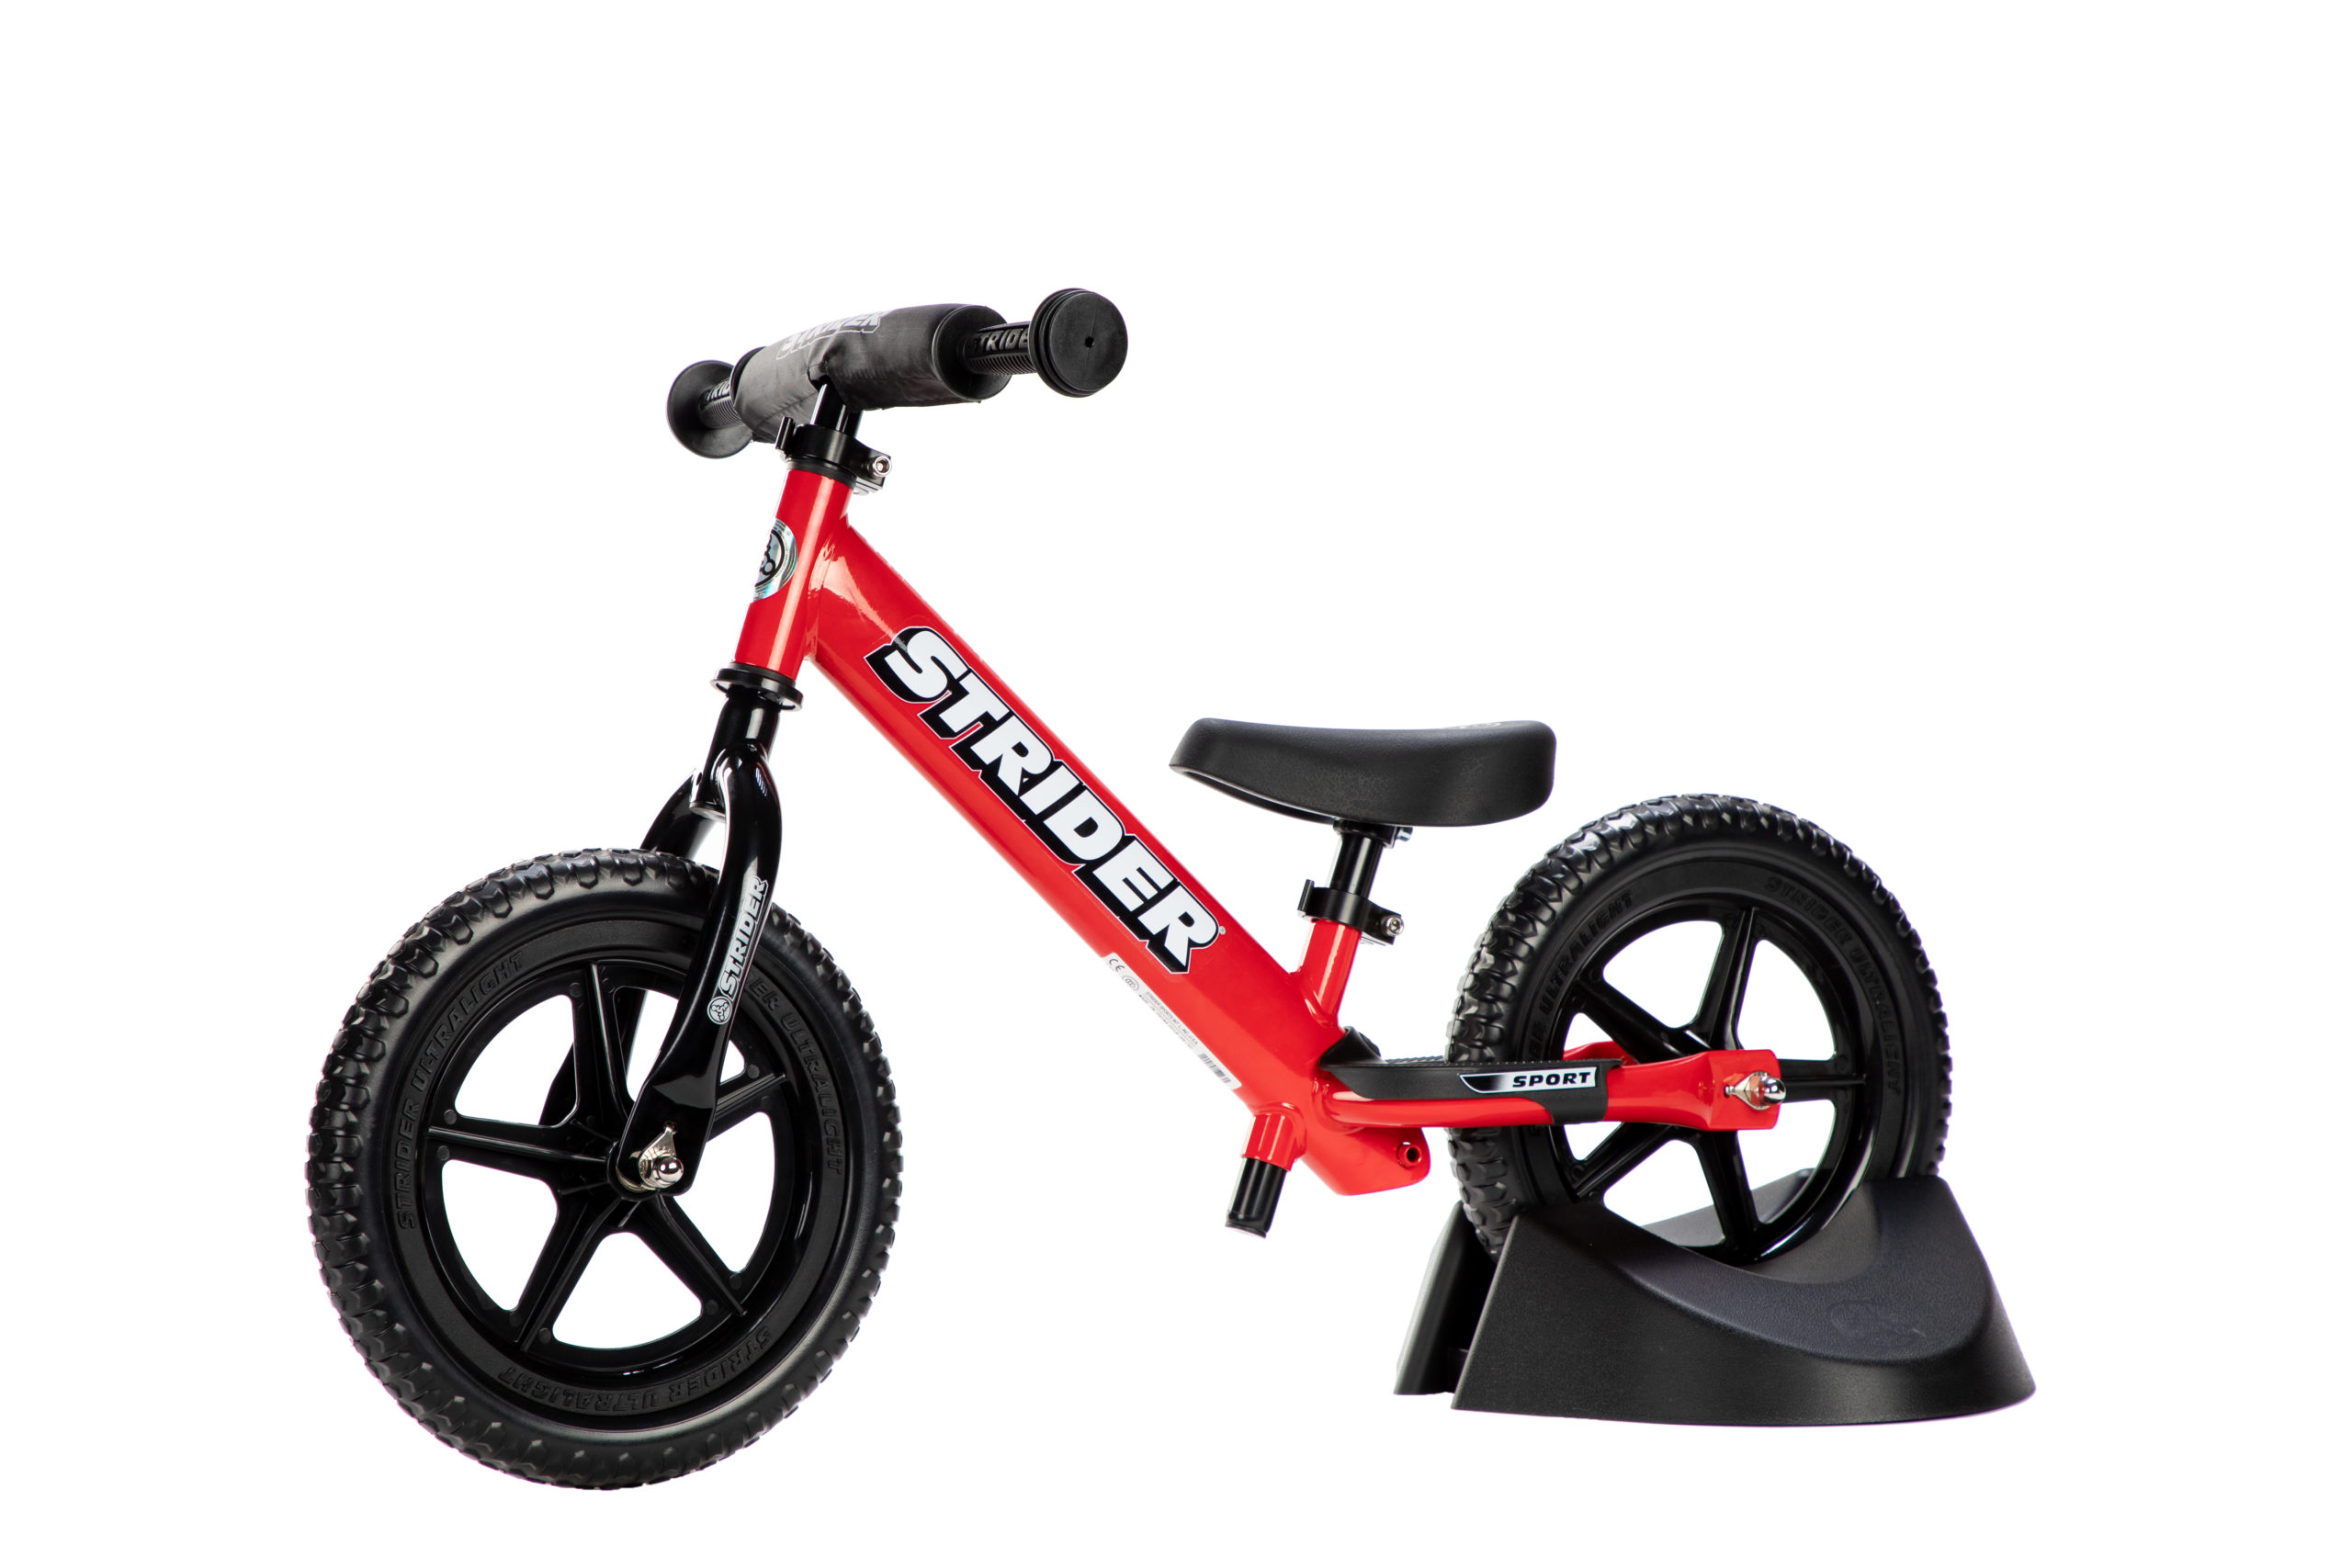 Studio image of red 12 Sport in bike stand